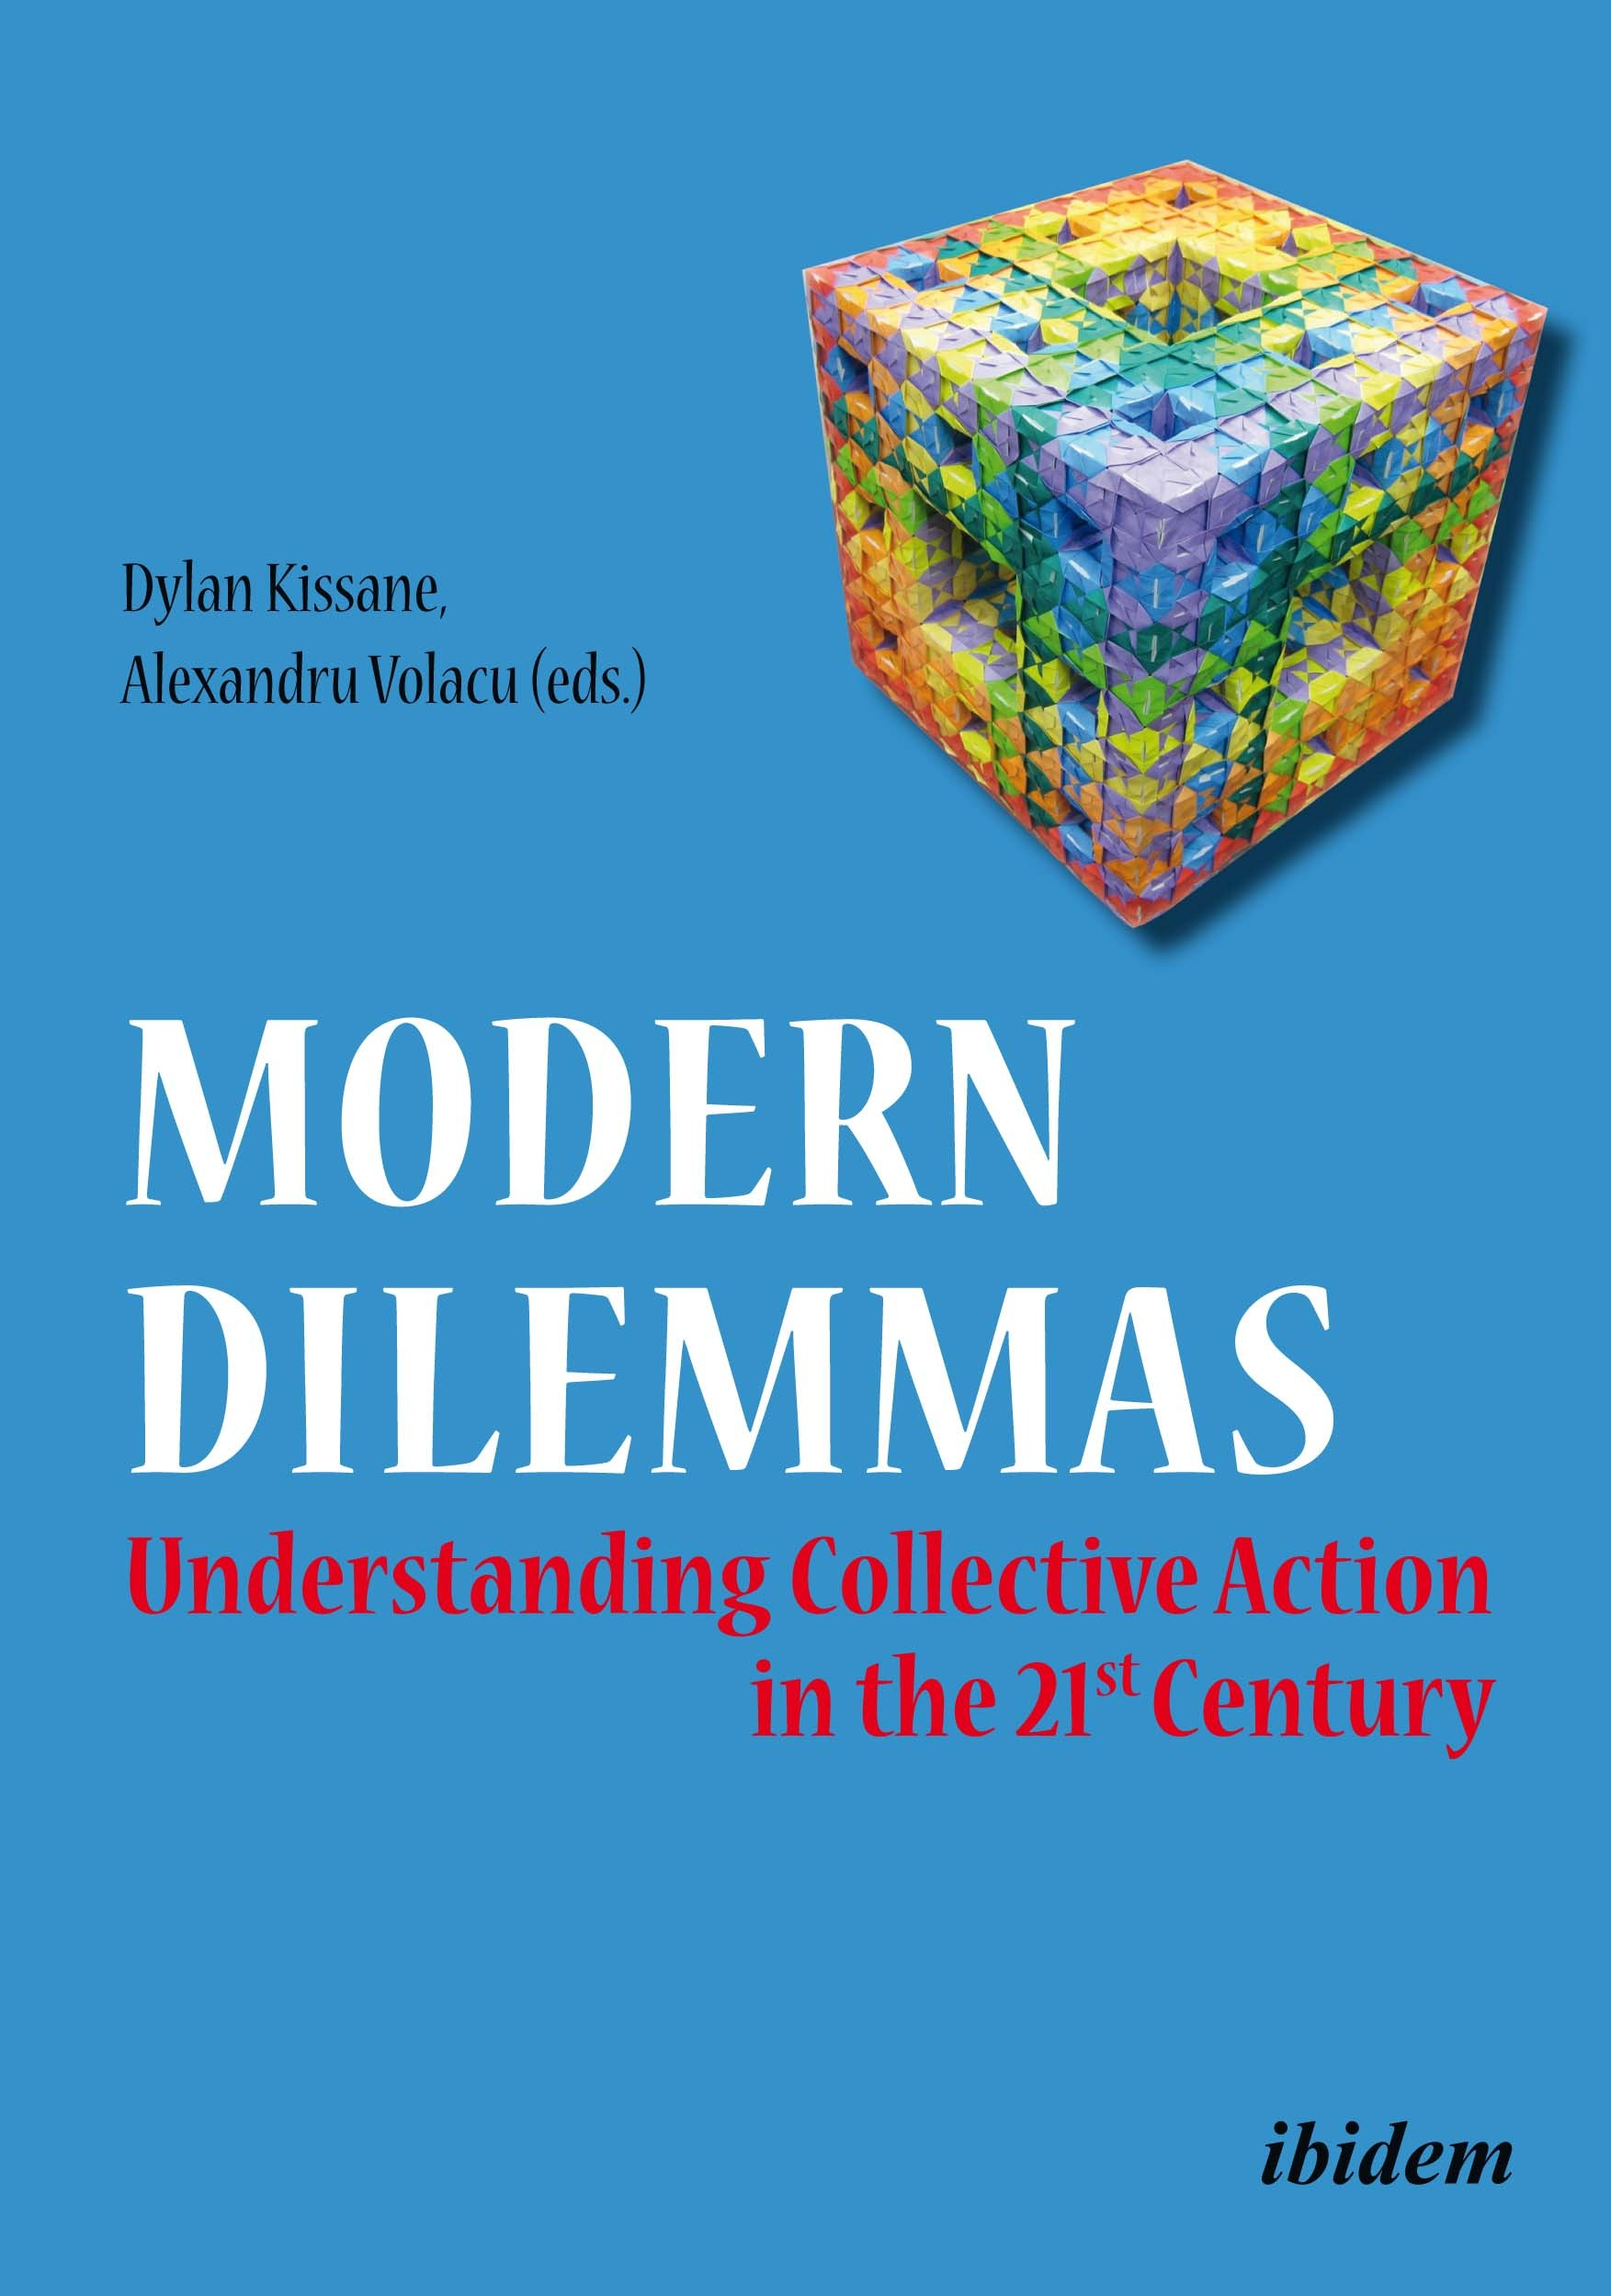 Modern Dilemmas: Understanding Collective Action in the 21st Century